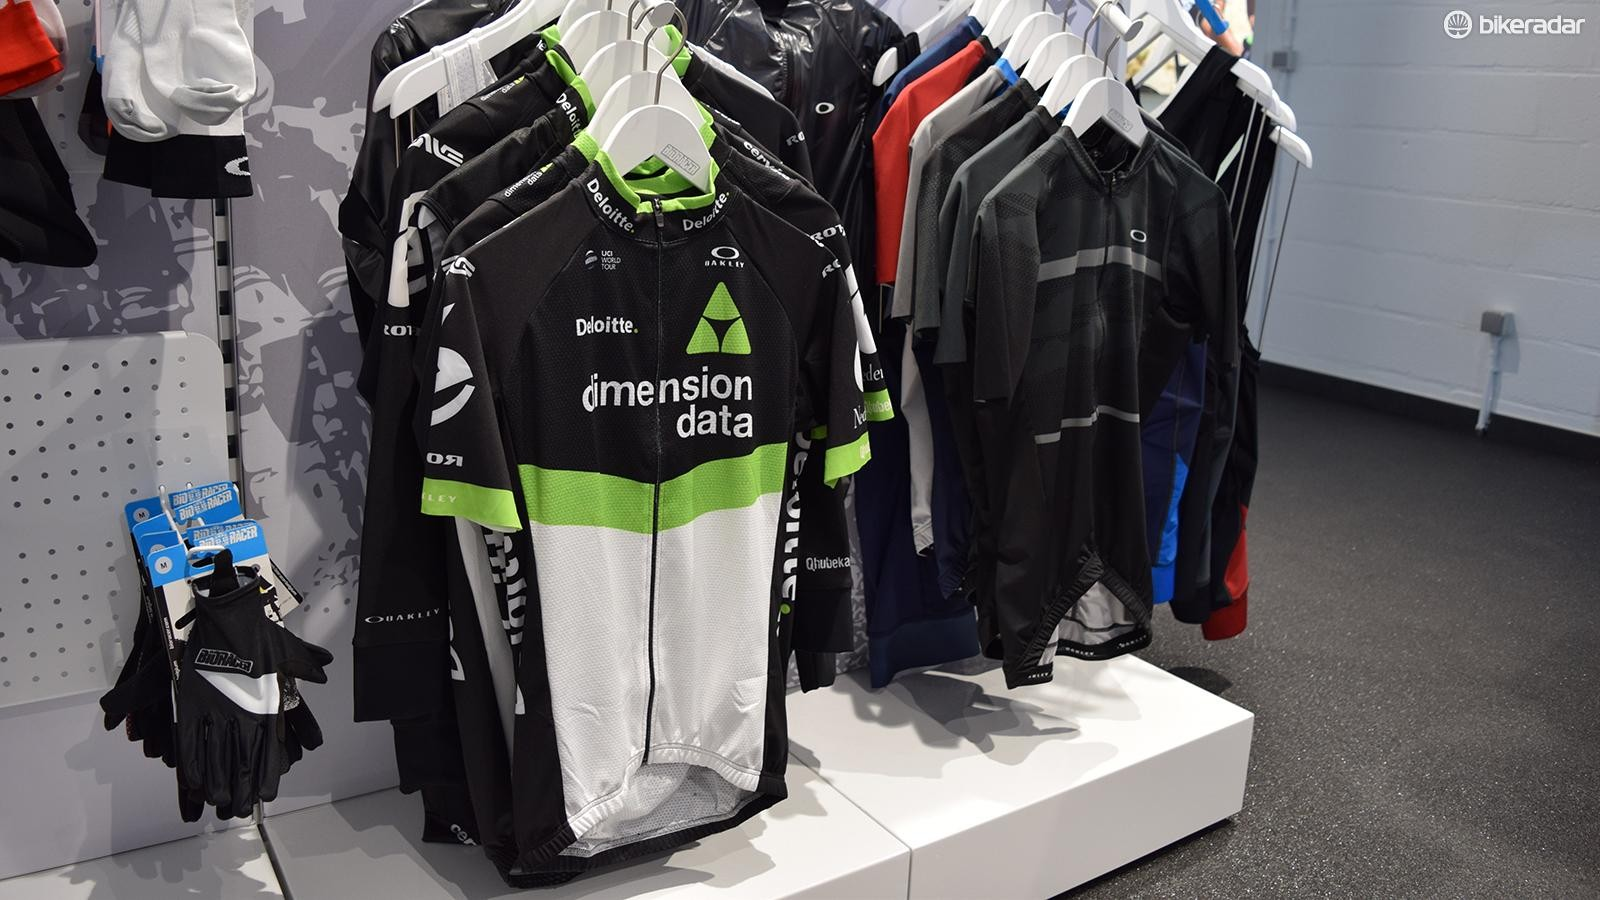 As well as its own clothing range, Bioracer produces cycle clothing for Oakley, used by Team Dimension Data